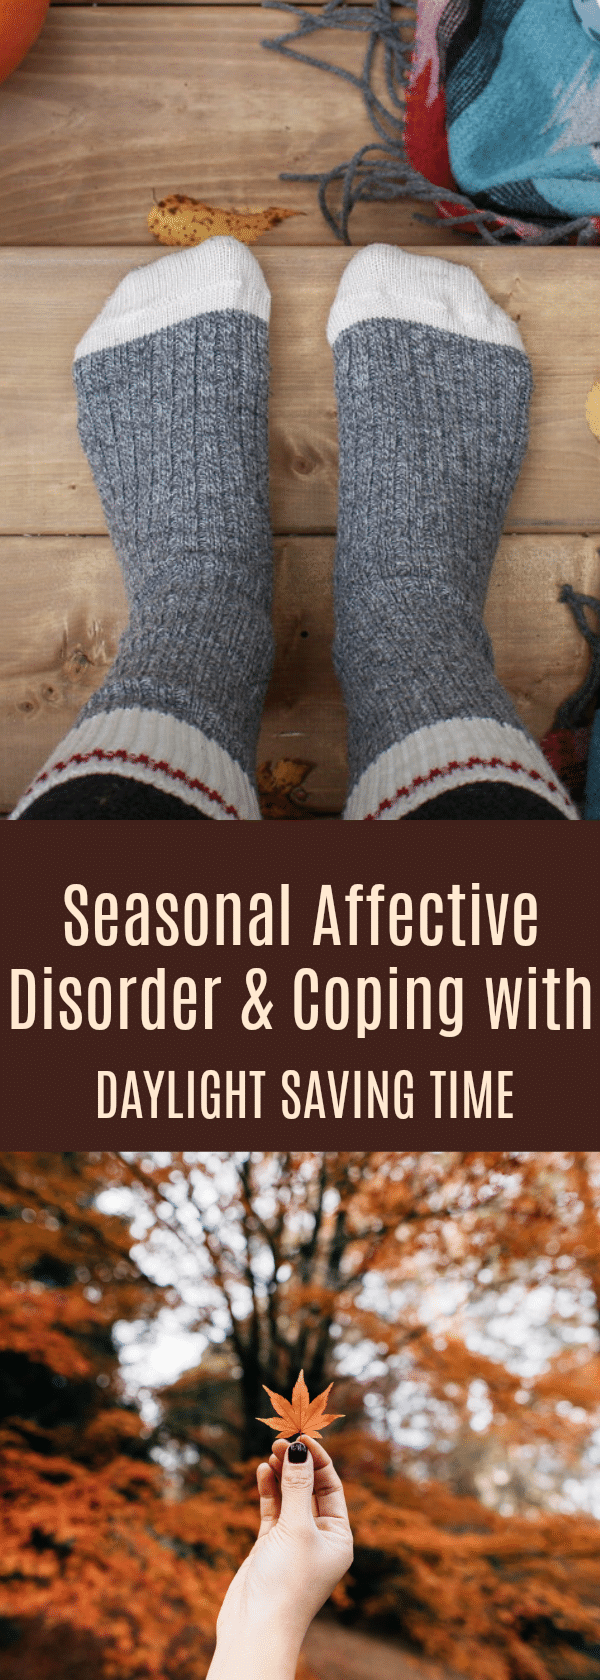 Winter blahs or Seasonal Affective Disorder (SAD) affects many people around this time of the year.